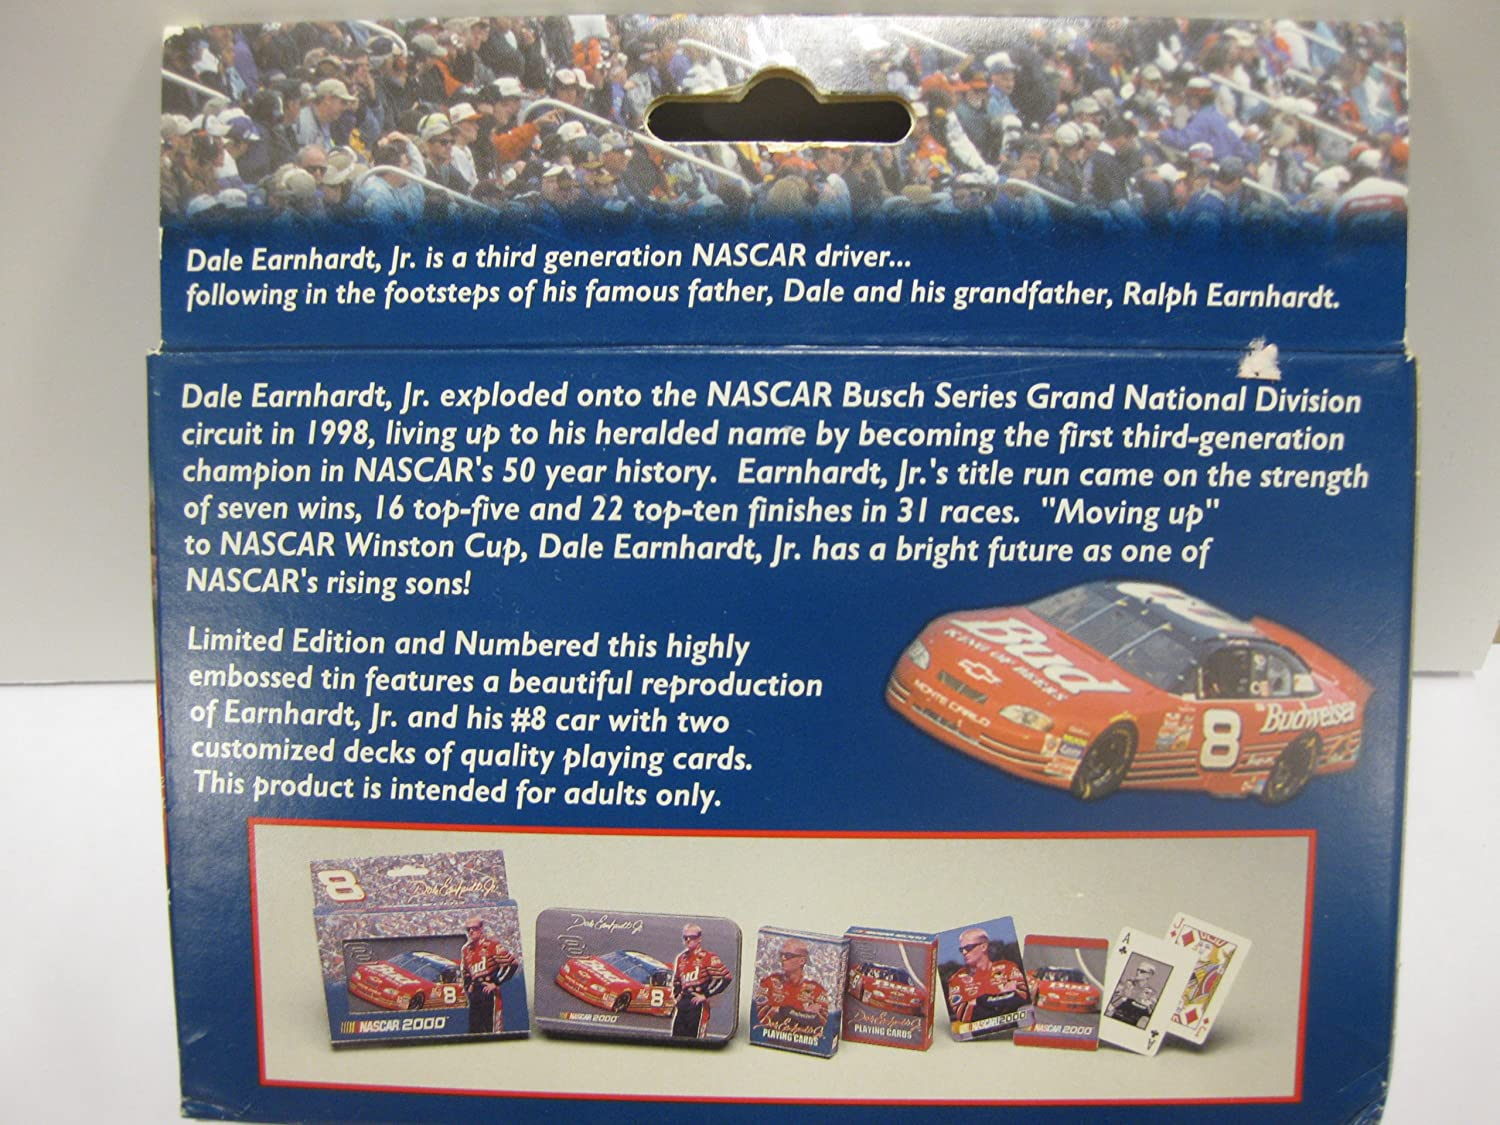 #8 Dale Earnhardt Jr 2-decks Playing Cards in Collectible TIN! Nascar 2000